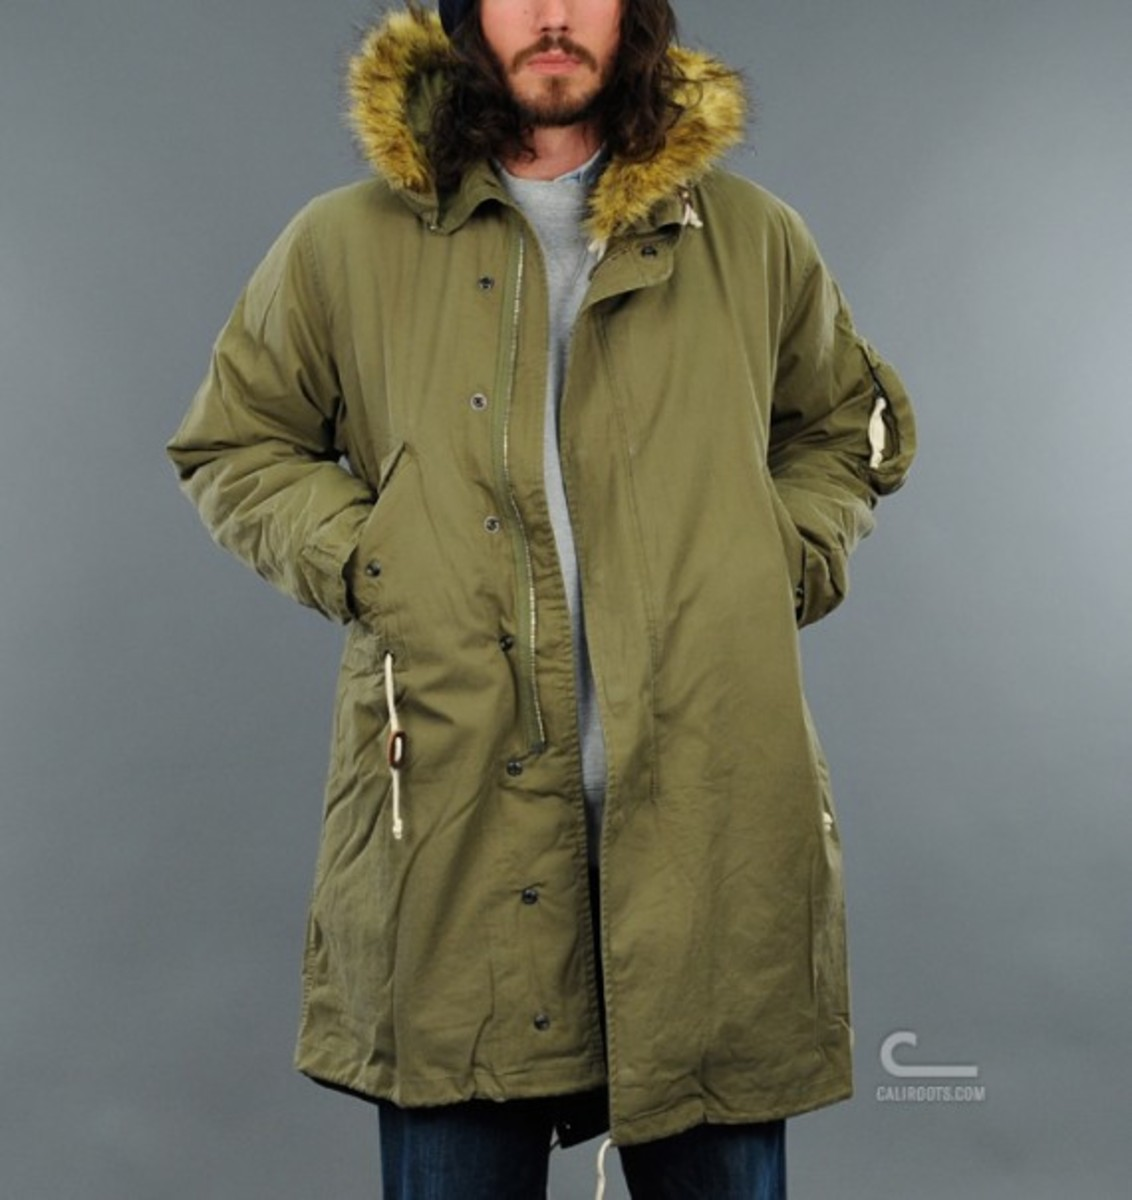 UNIVERSAL WORKS x C-Store Mod Parka | Available Now - Freshness Mag